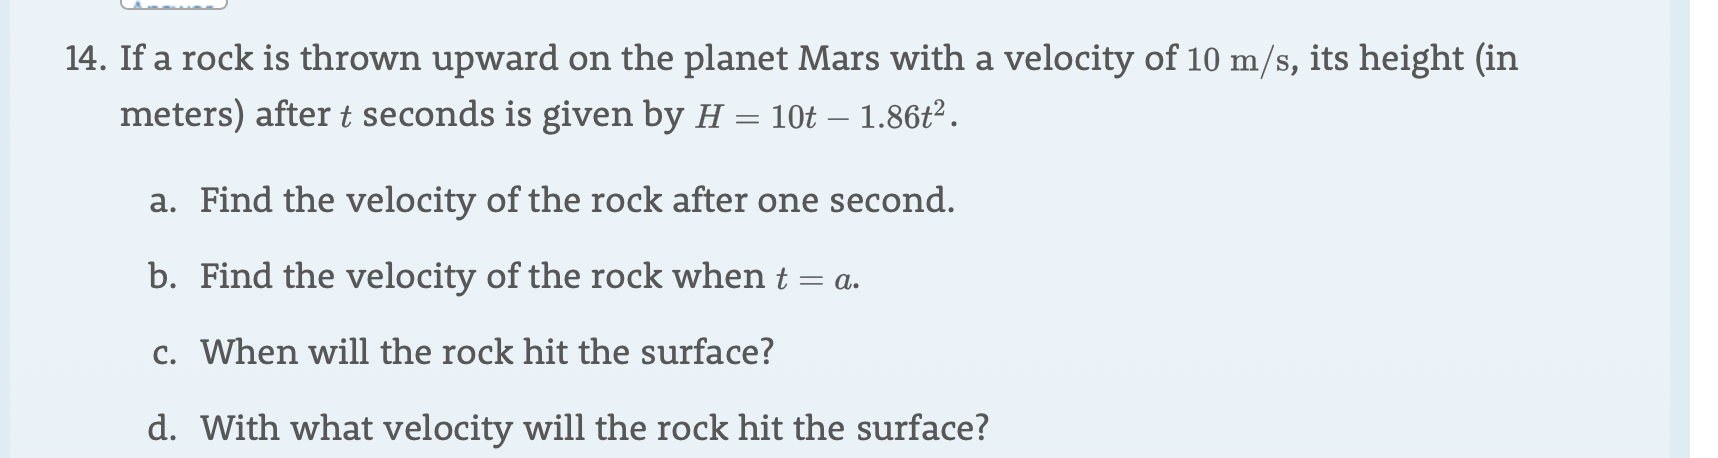 14. If a rock is thrown upward on the planet Mars with a velocity of 10 m/s, its height (in meters) after t seconds is given by H = 10t - 1.86t2 a. Find the velocity of the rock after one second. b. Find the velocity of the rock when t = a. c. When will the rock hit the surface? d. With what velocity will the rock hit the surface?